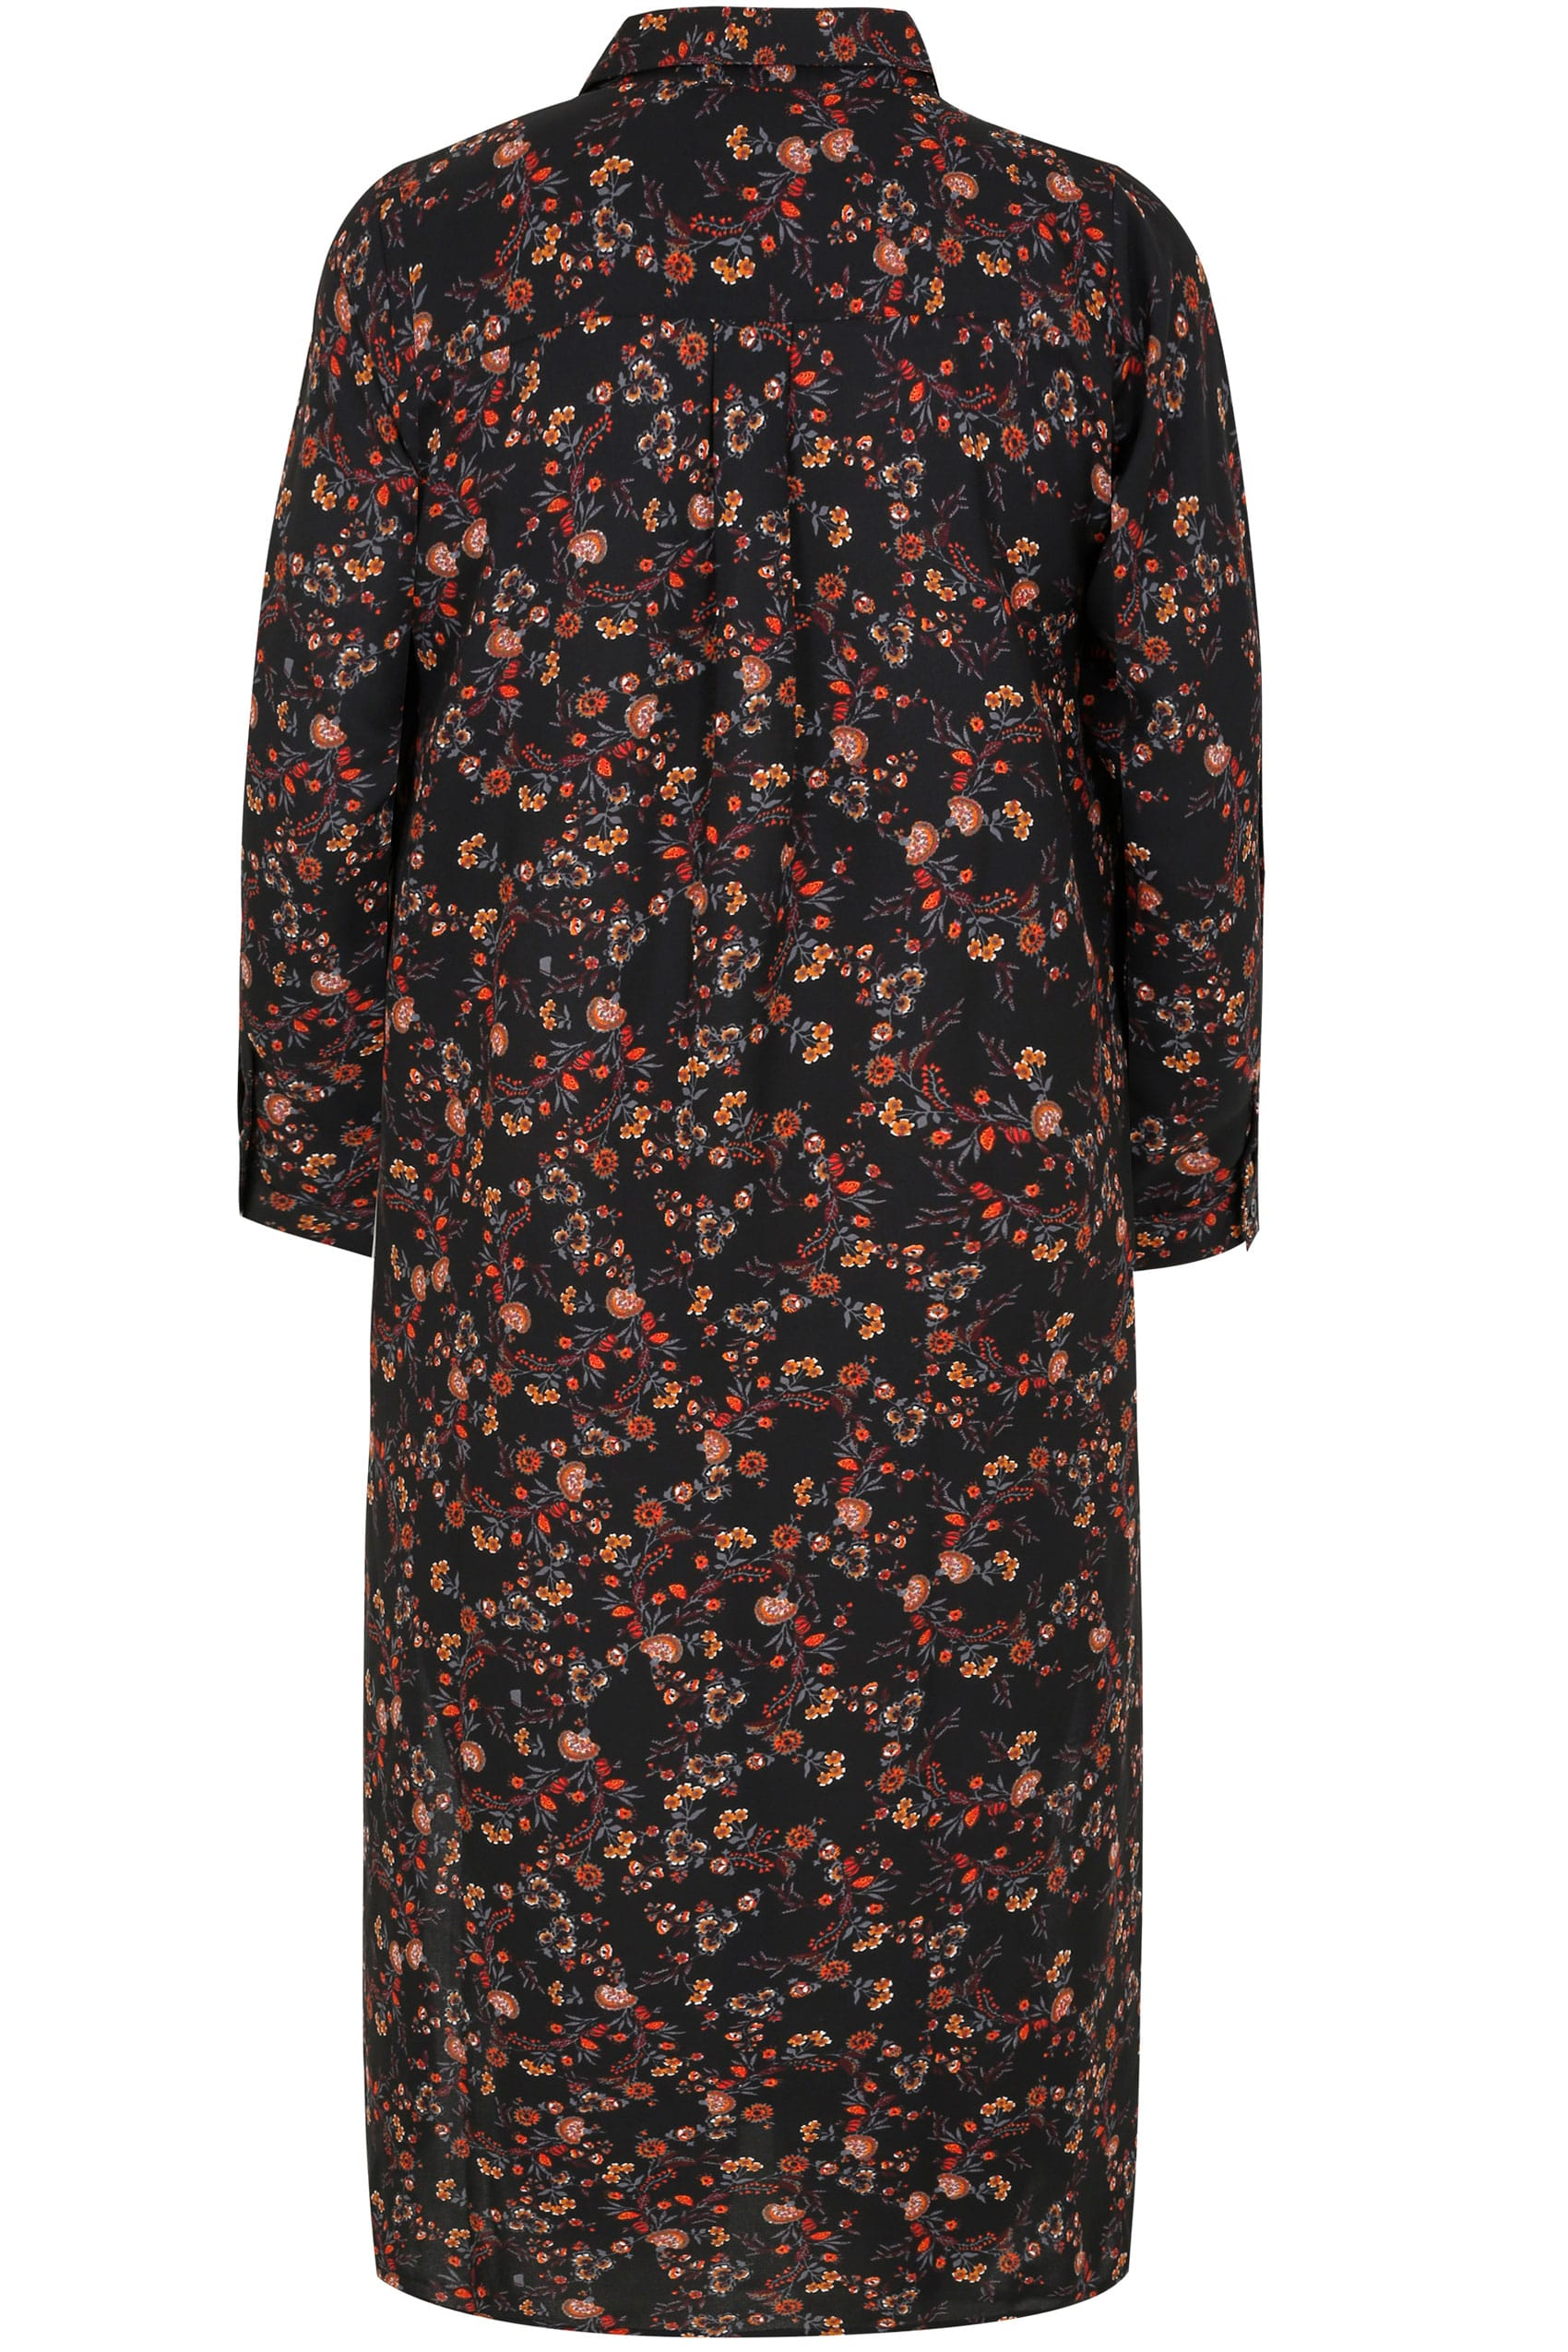 Black multi floral print maxi shirt dress plus size 16 for Black floral print shirt